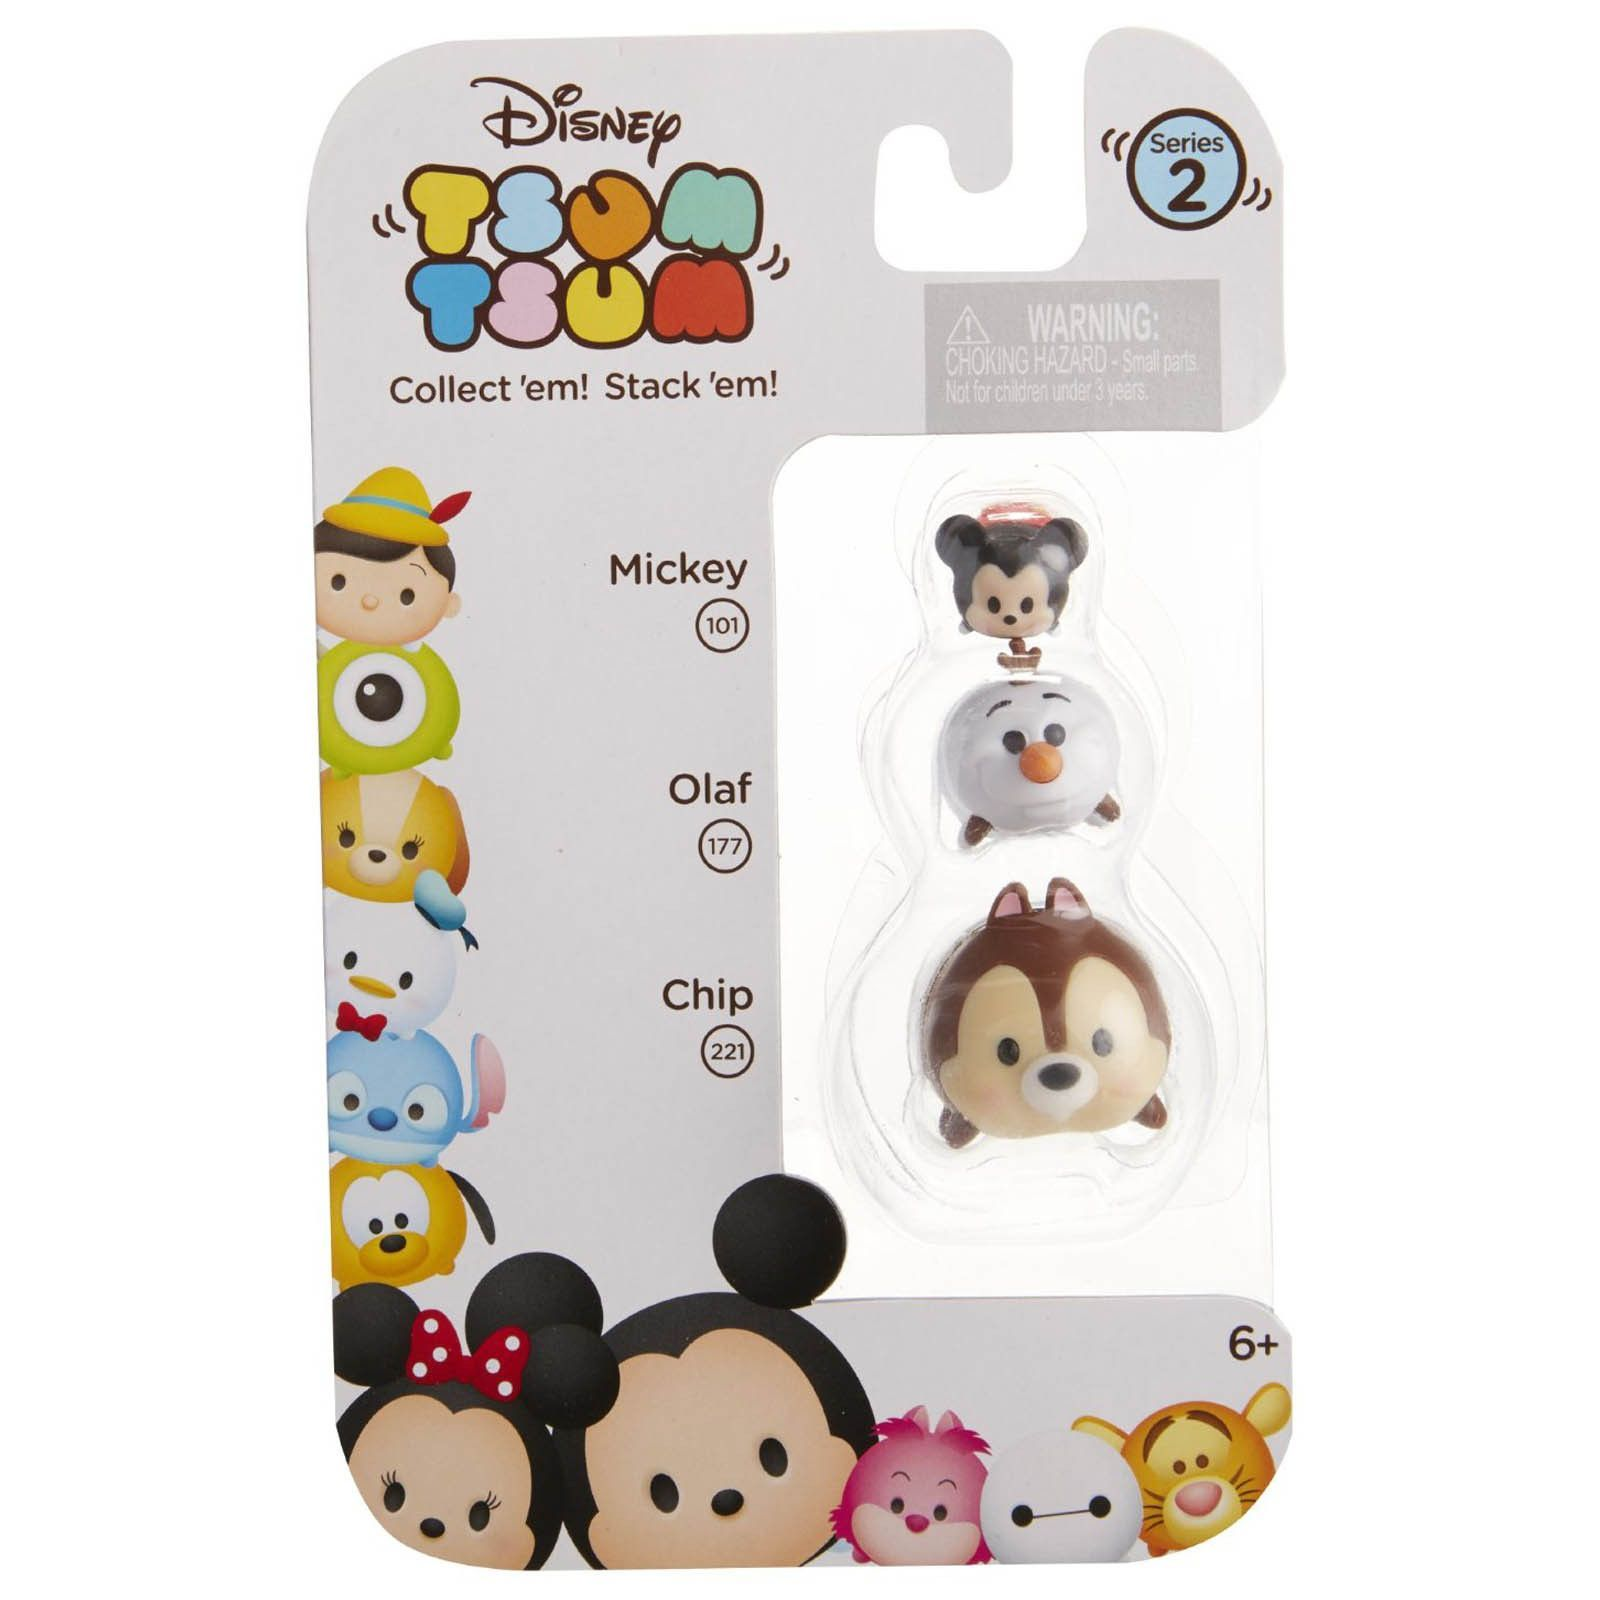 Disney Tsum Tsum Series 2 Mickey Olaf Chip Figures 3 Pack